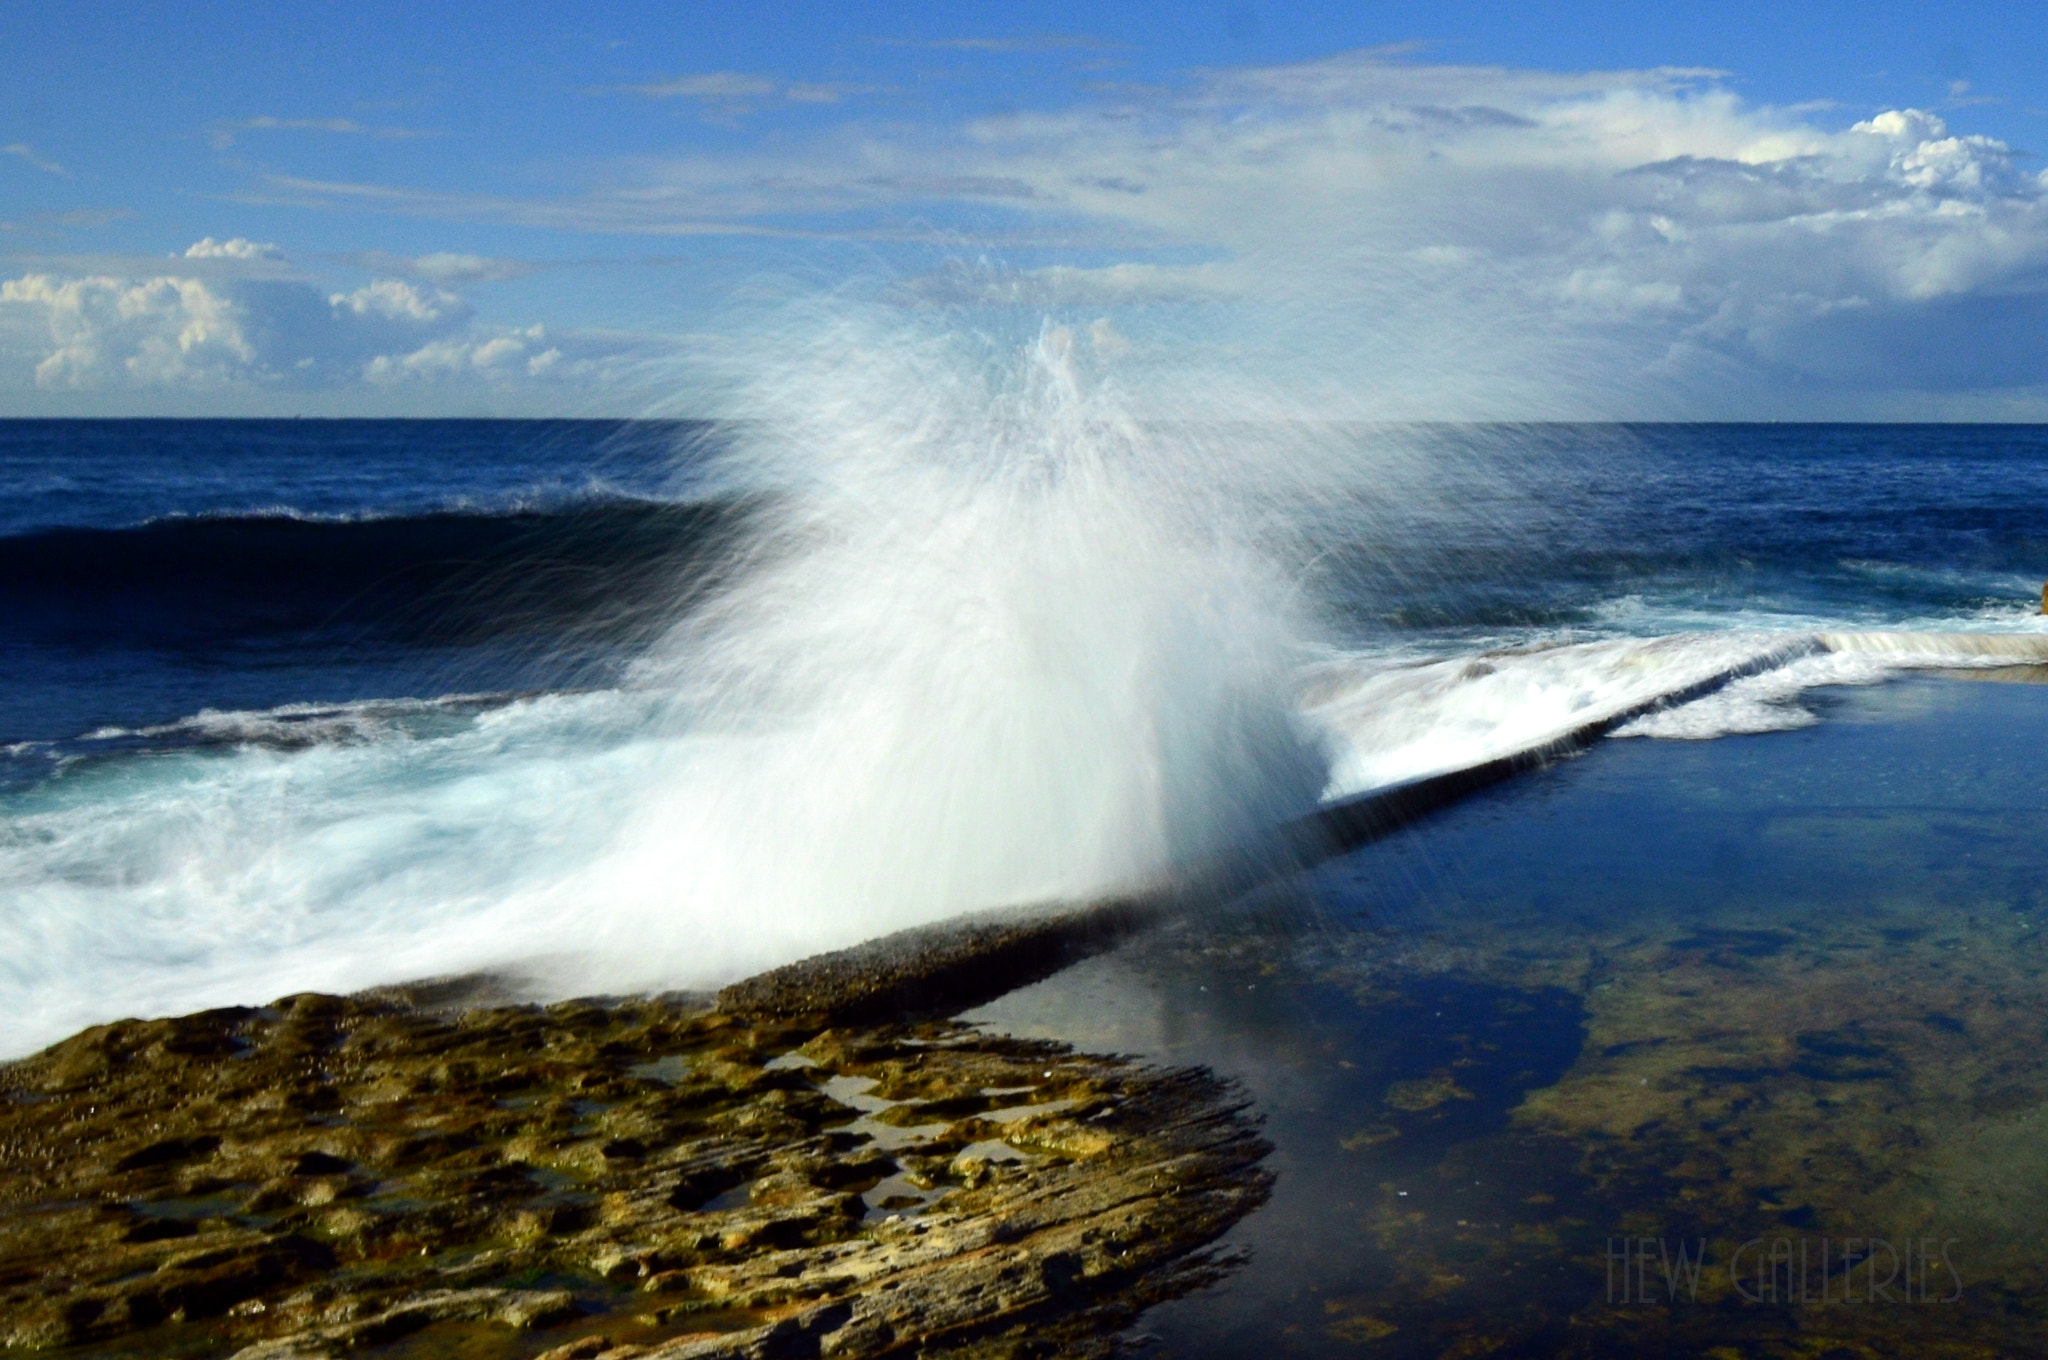 Photograph Dee Why rockpool by Chye Hew on 500px